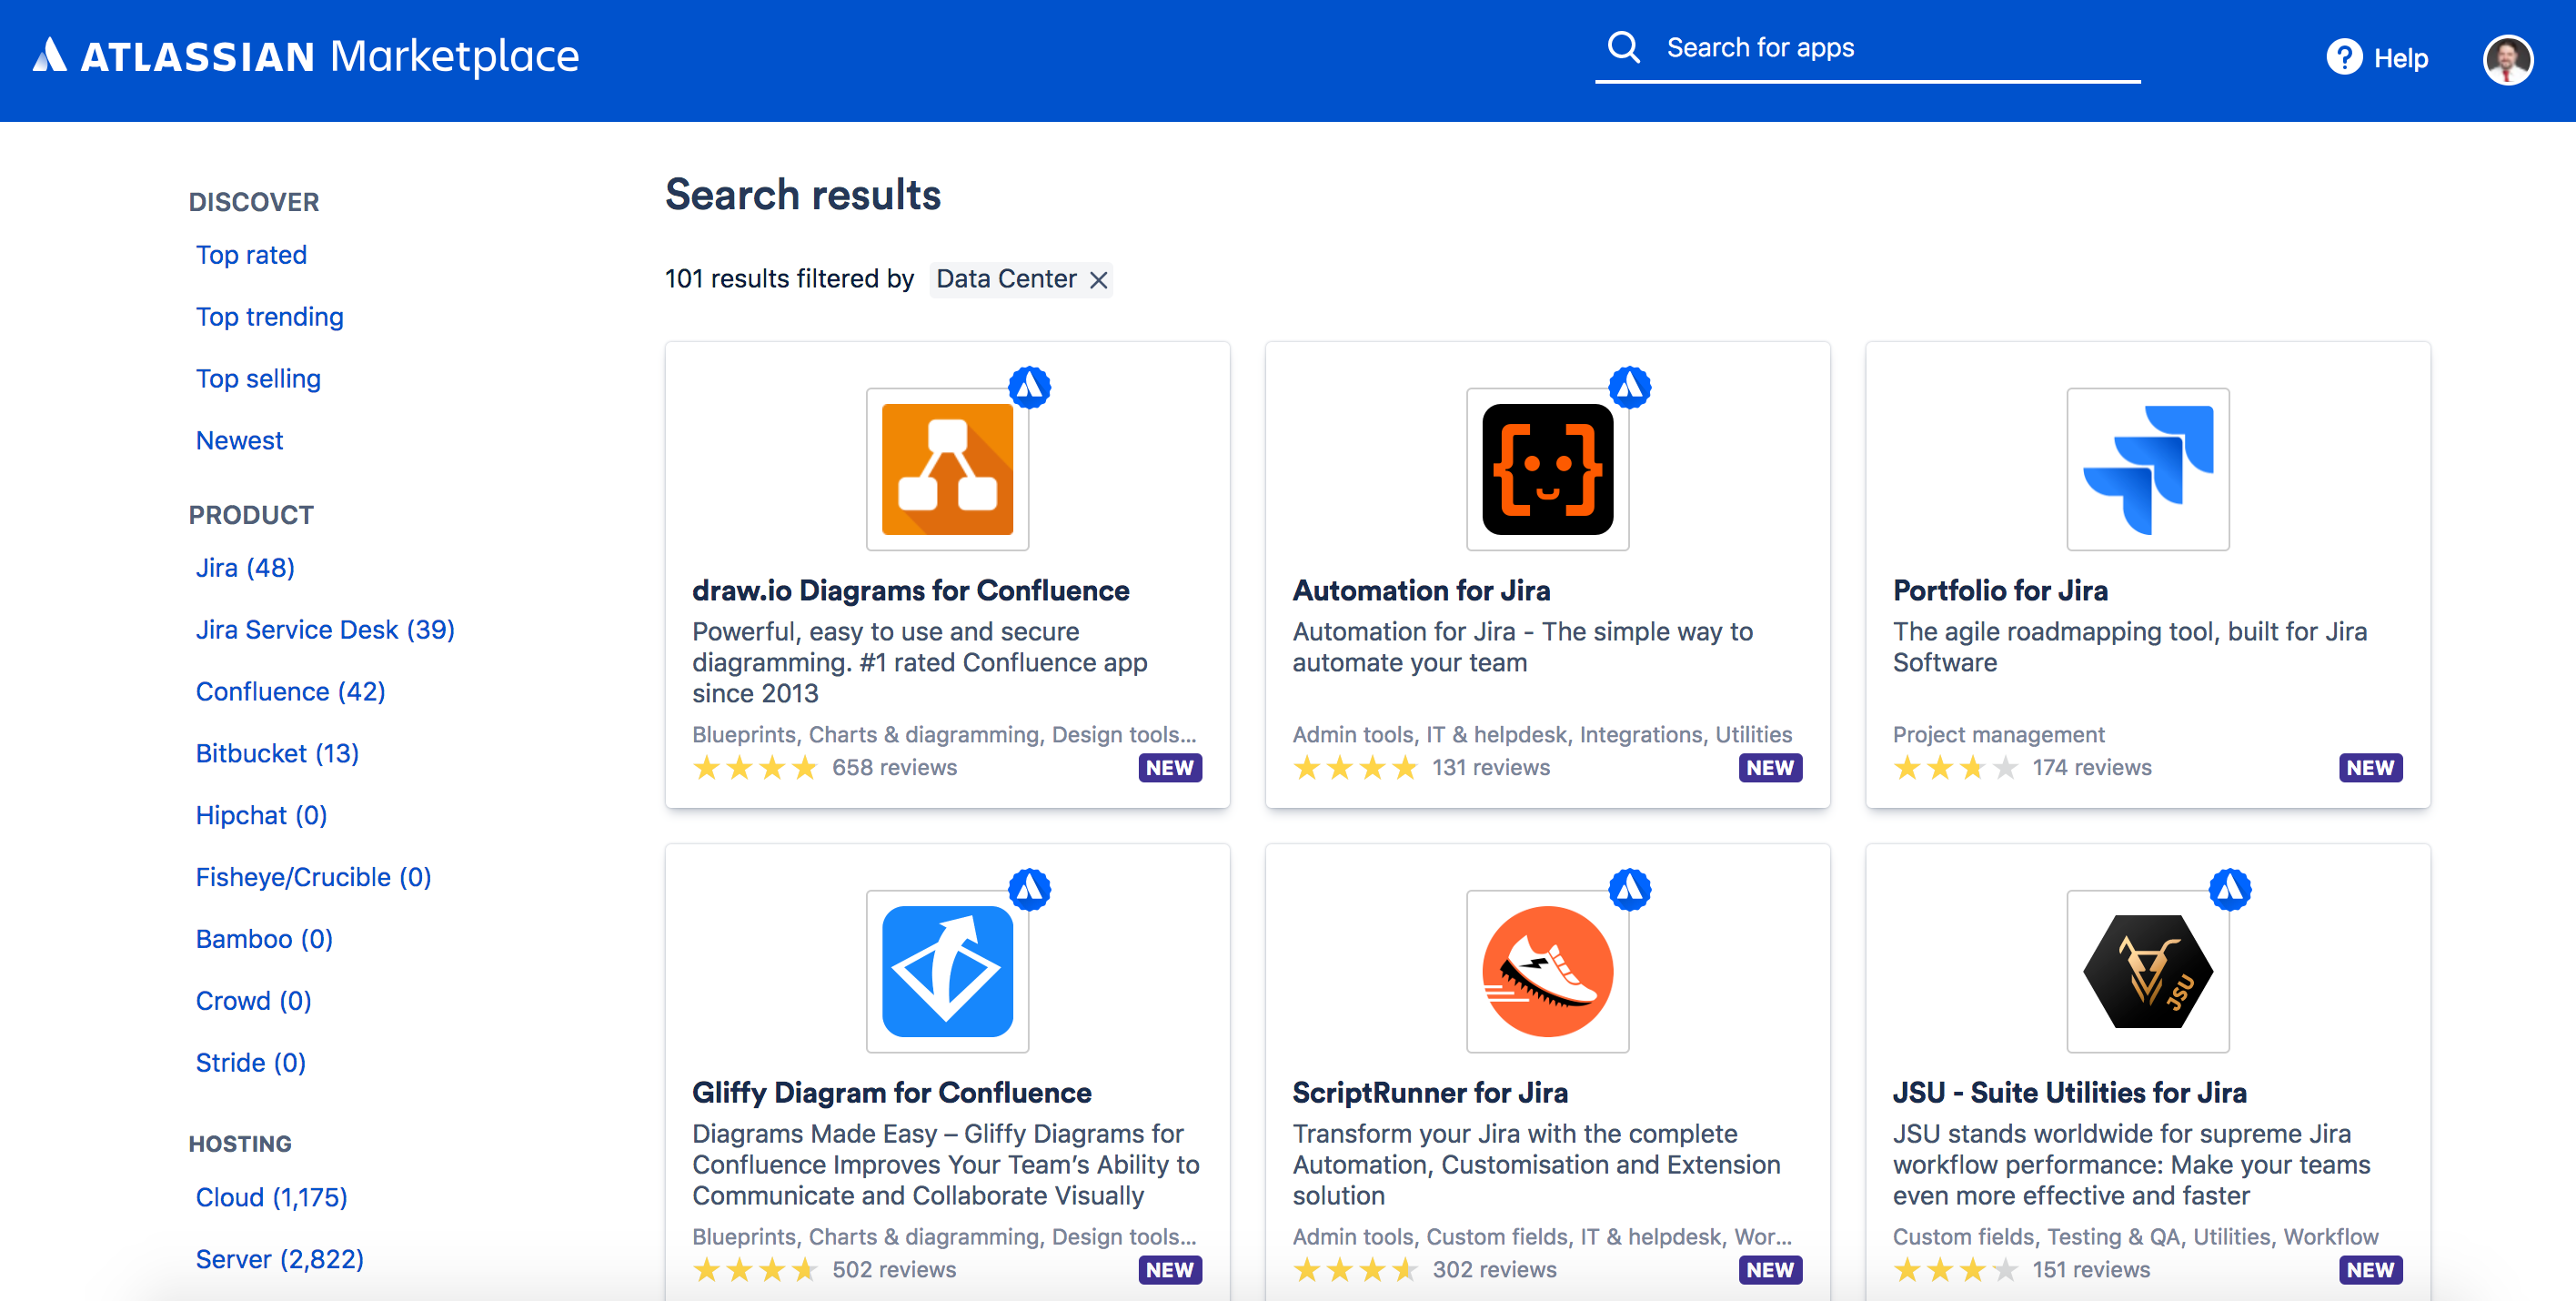 Atlassian Marketplace - Data Center approved